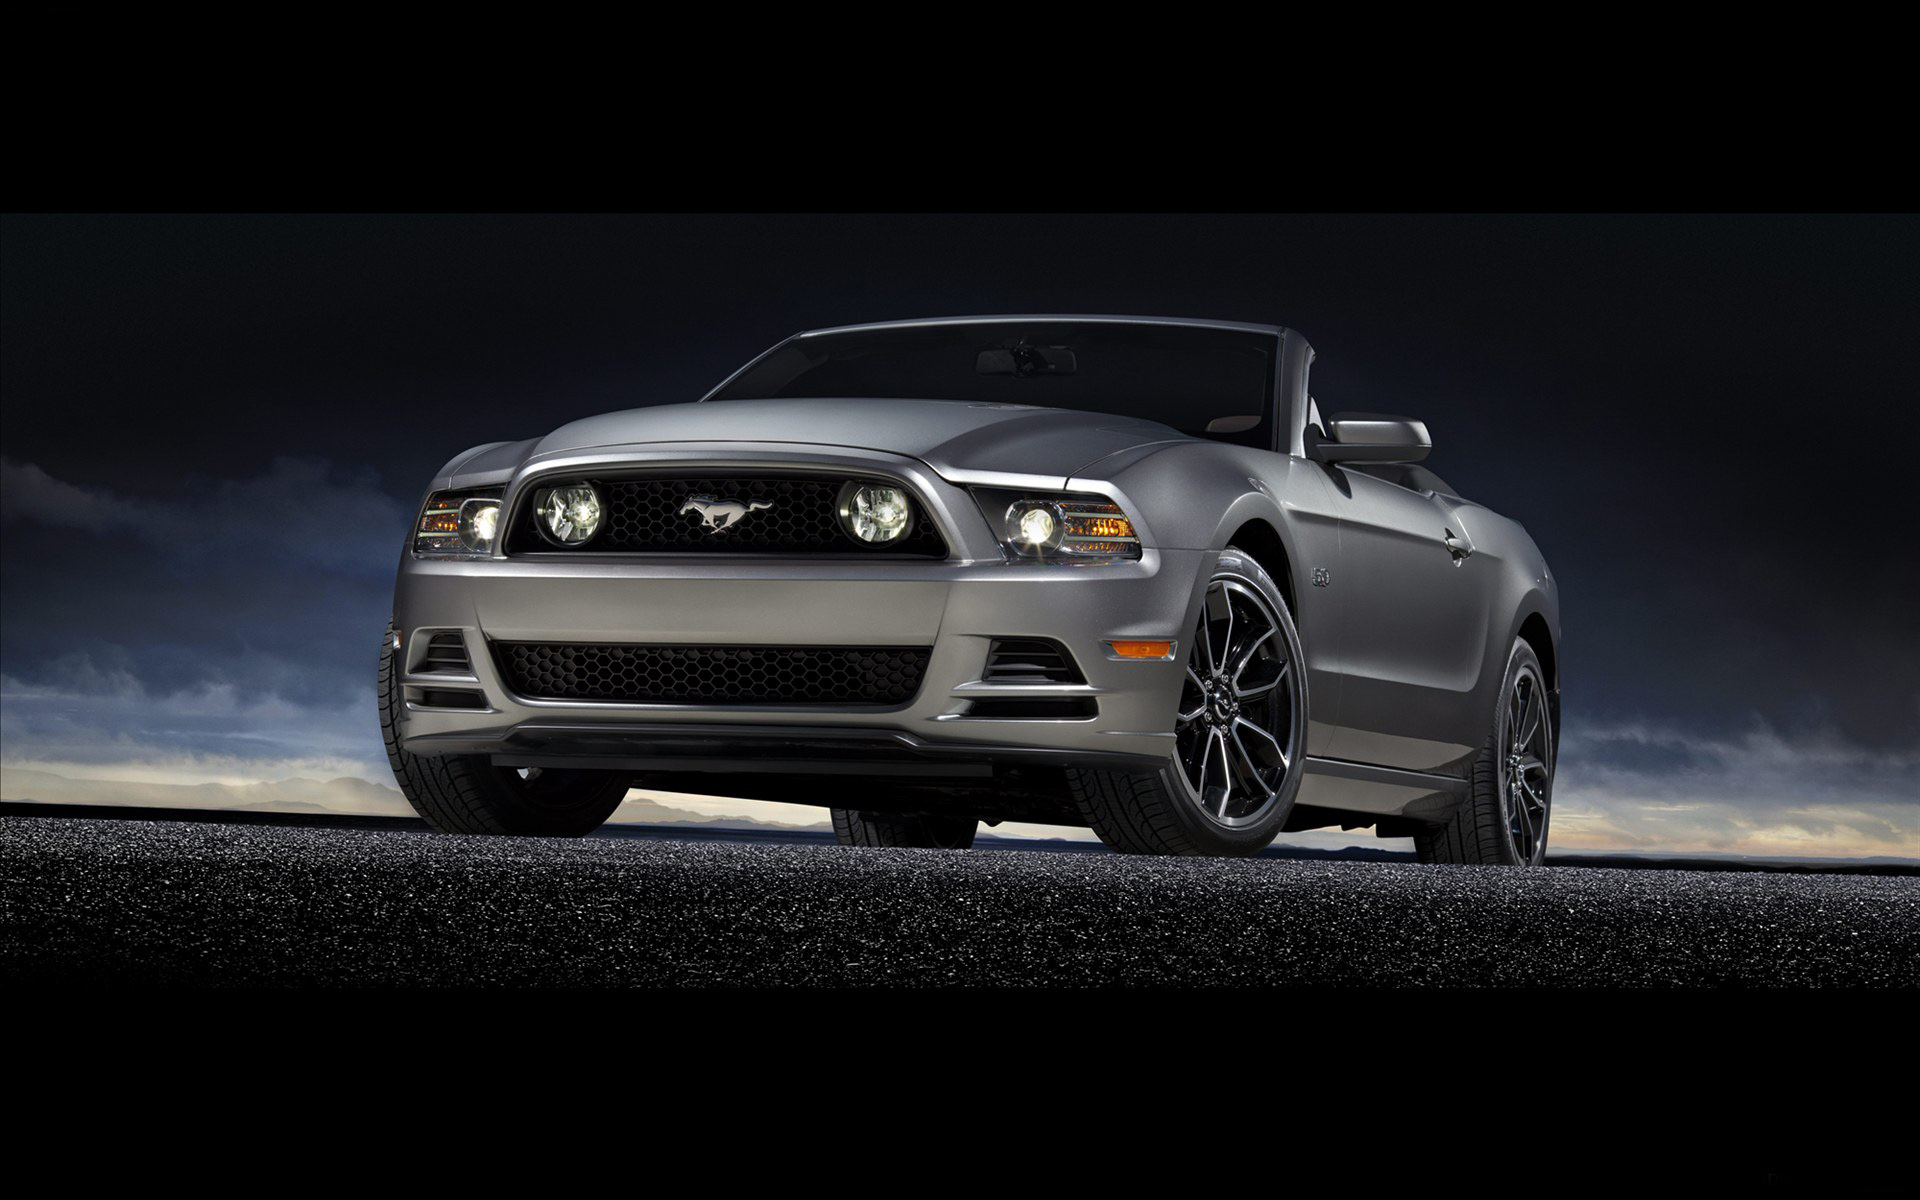 Download ford mustang hd wallpapers for desktop gallery - Ford mustang wallpaper download ...